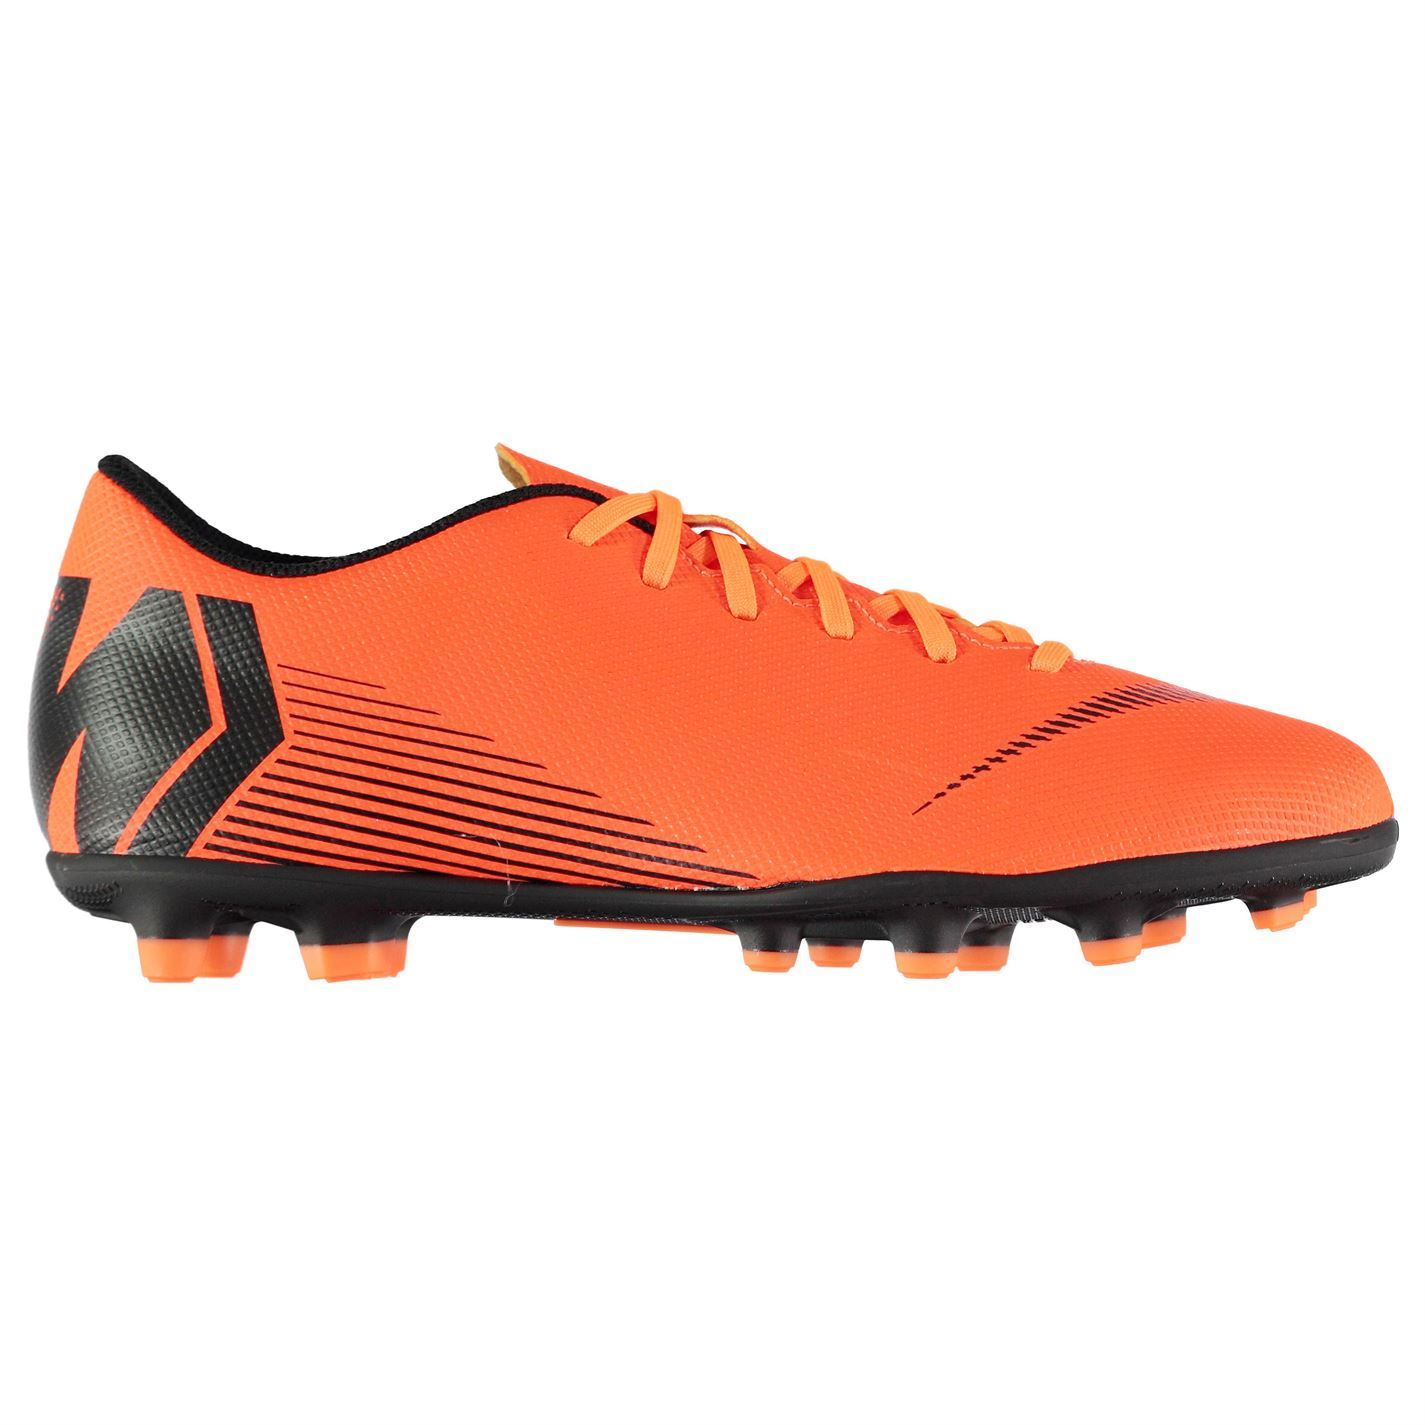 781f54eff Nike Mercurial Vapor Club FG Firm Ground Football Boots Mens Soccer ...